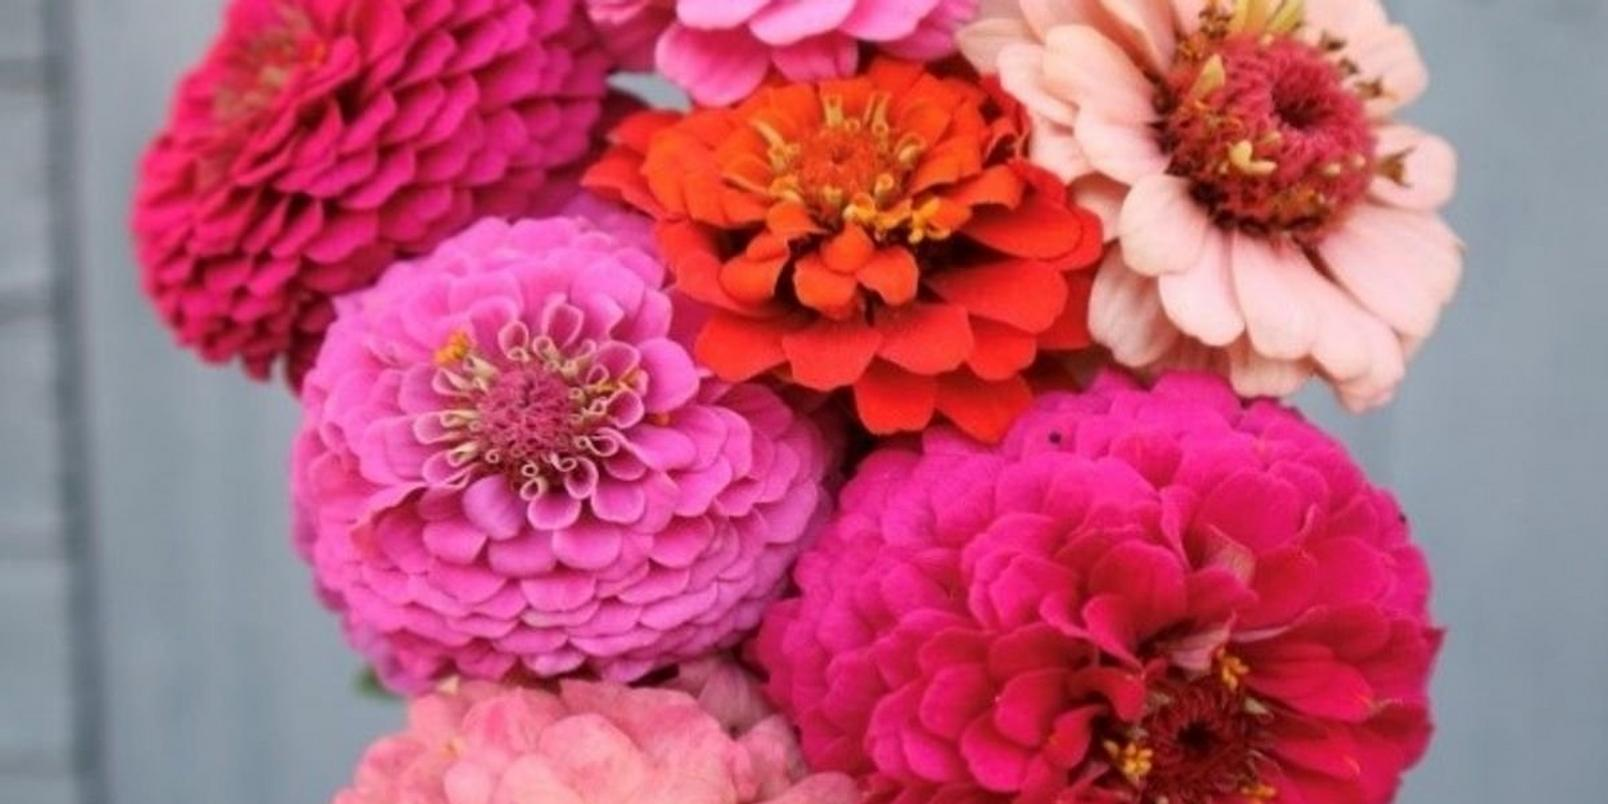 mindfloral-gardening-therapy-kirsty-ward-1